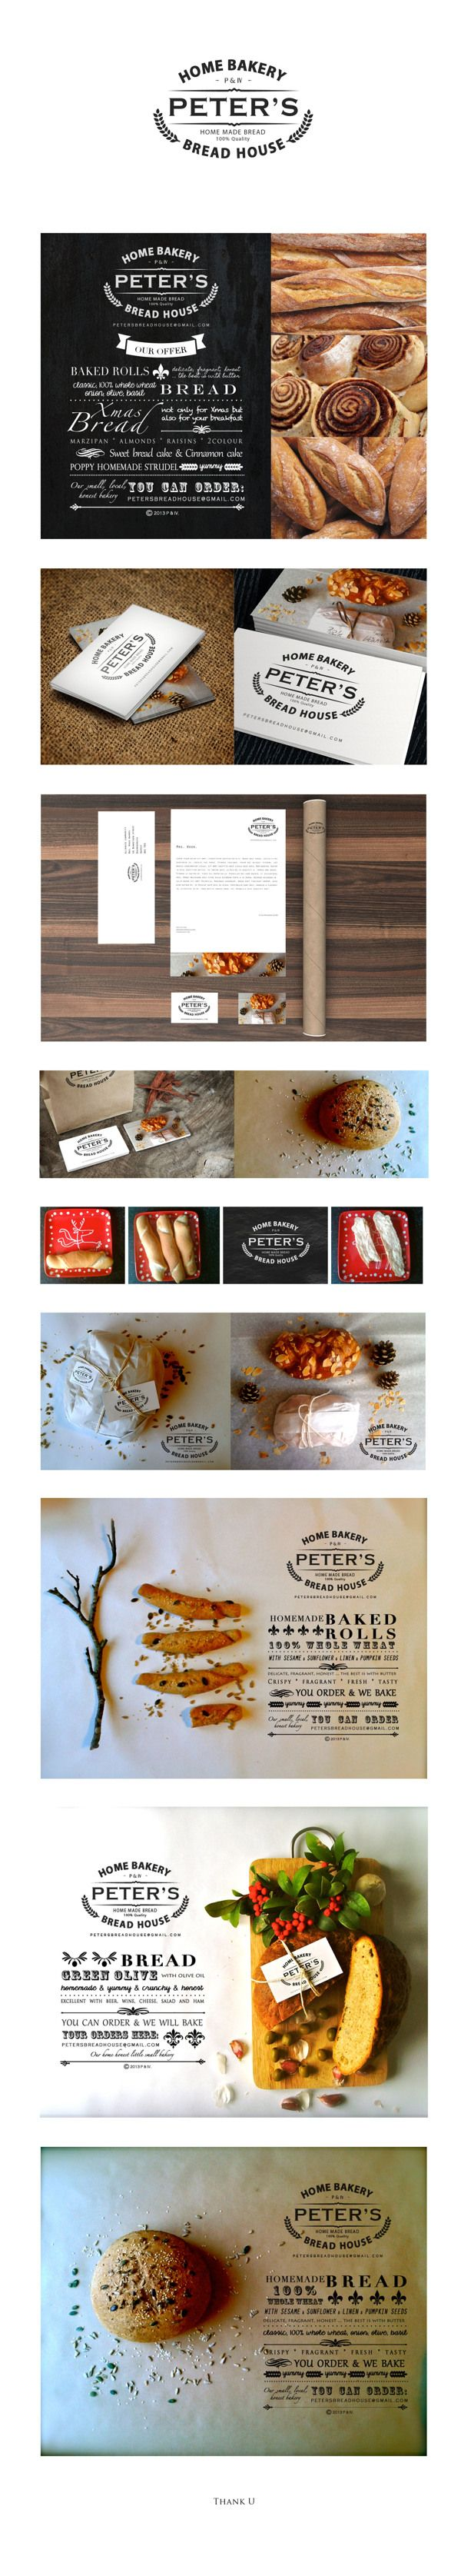 Peter's Bread House - our own little home bakery on Behance